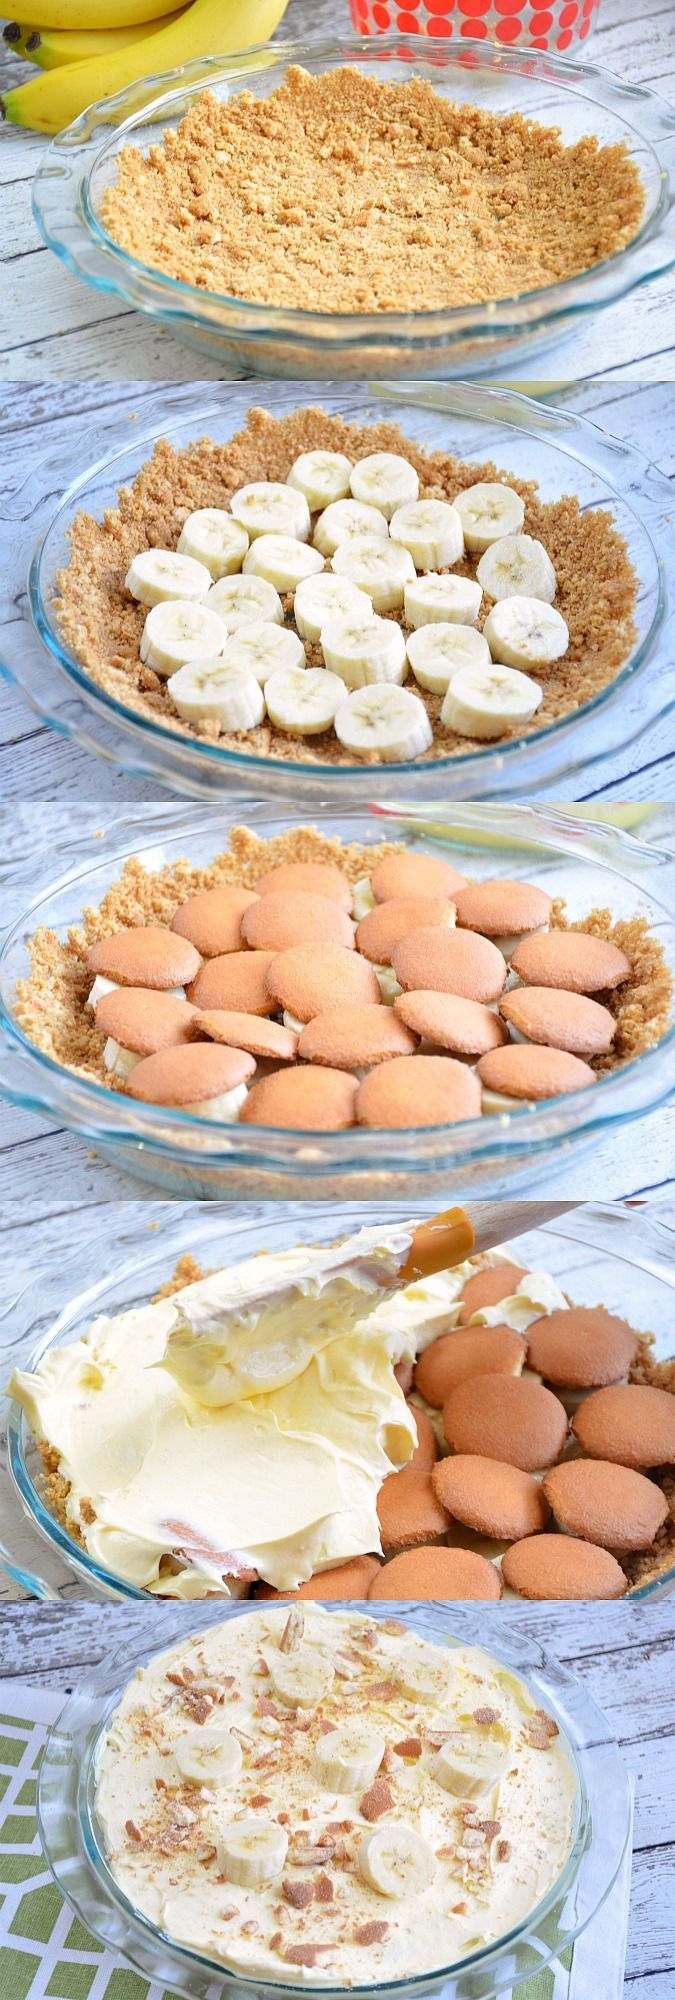 Easy No-Bake Banana Nilla Pie Recipes - This delicious no-bake dessert recipe is perfect for hot summer days! #Pyrex100 #ad